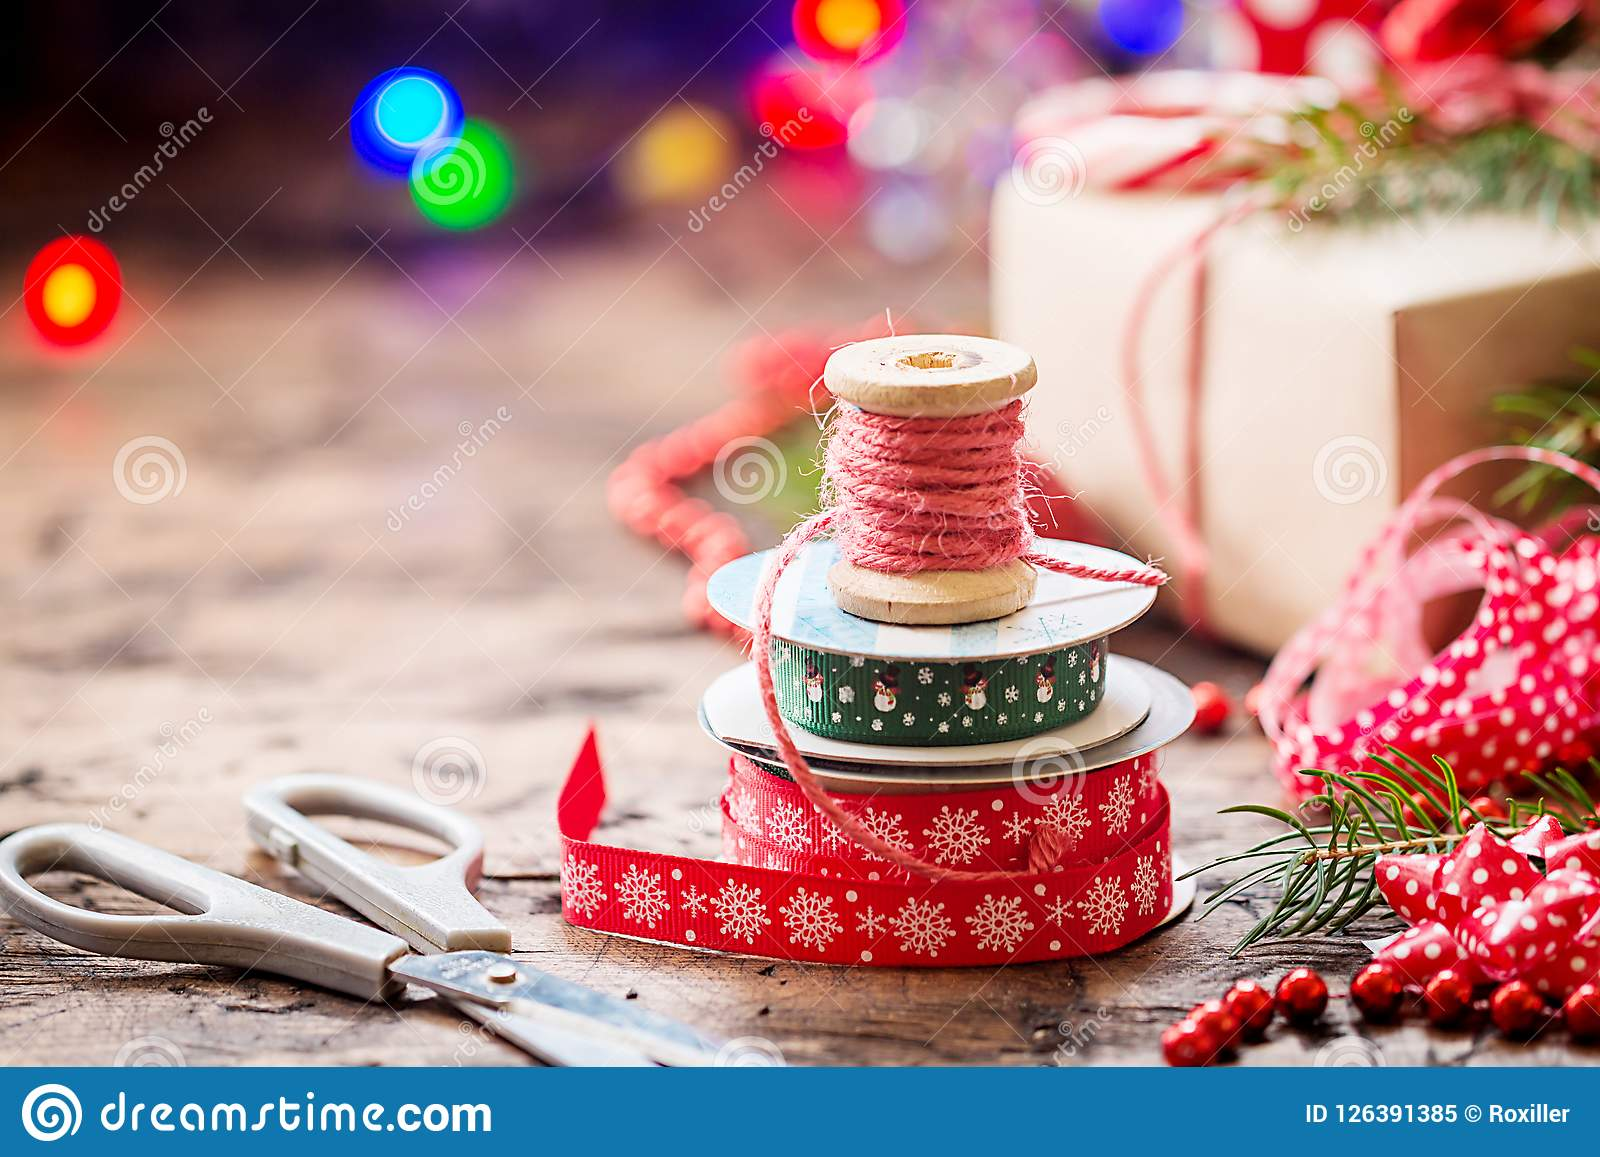 Christmas Homemade Gifts Christmas Decoration For Gifts Stock Image Image Of Bobbin